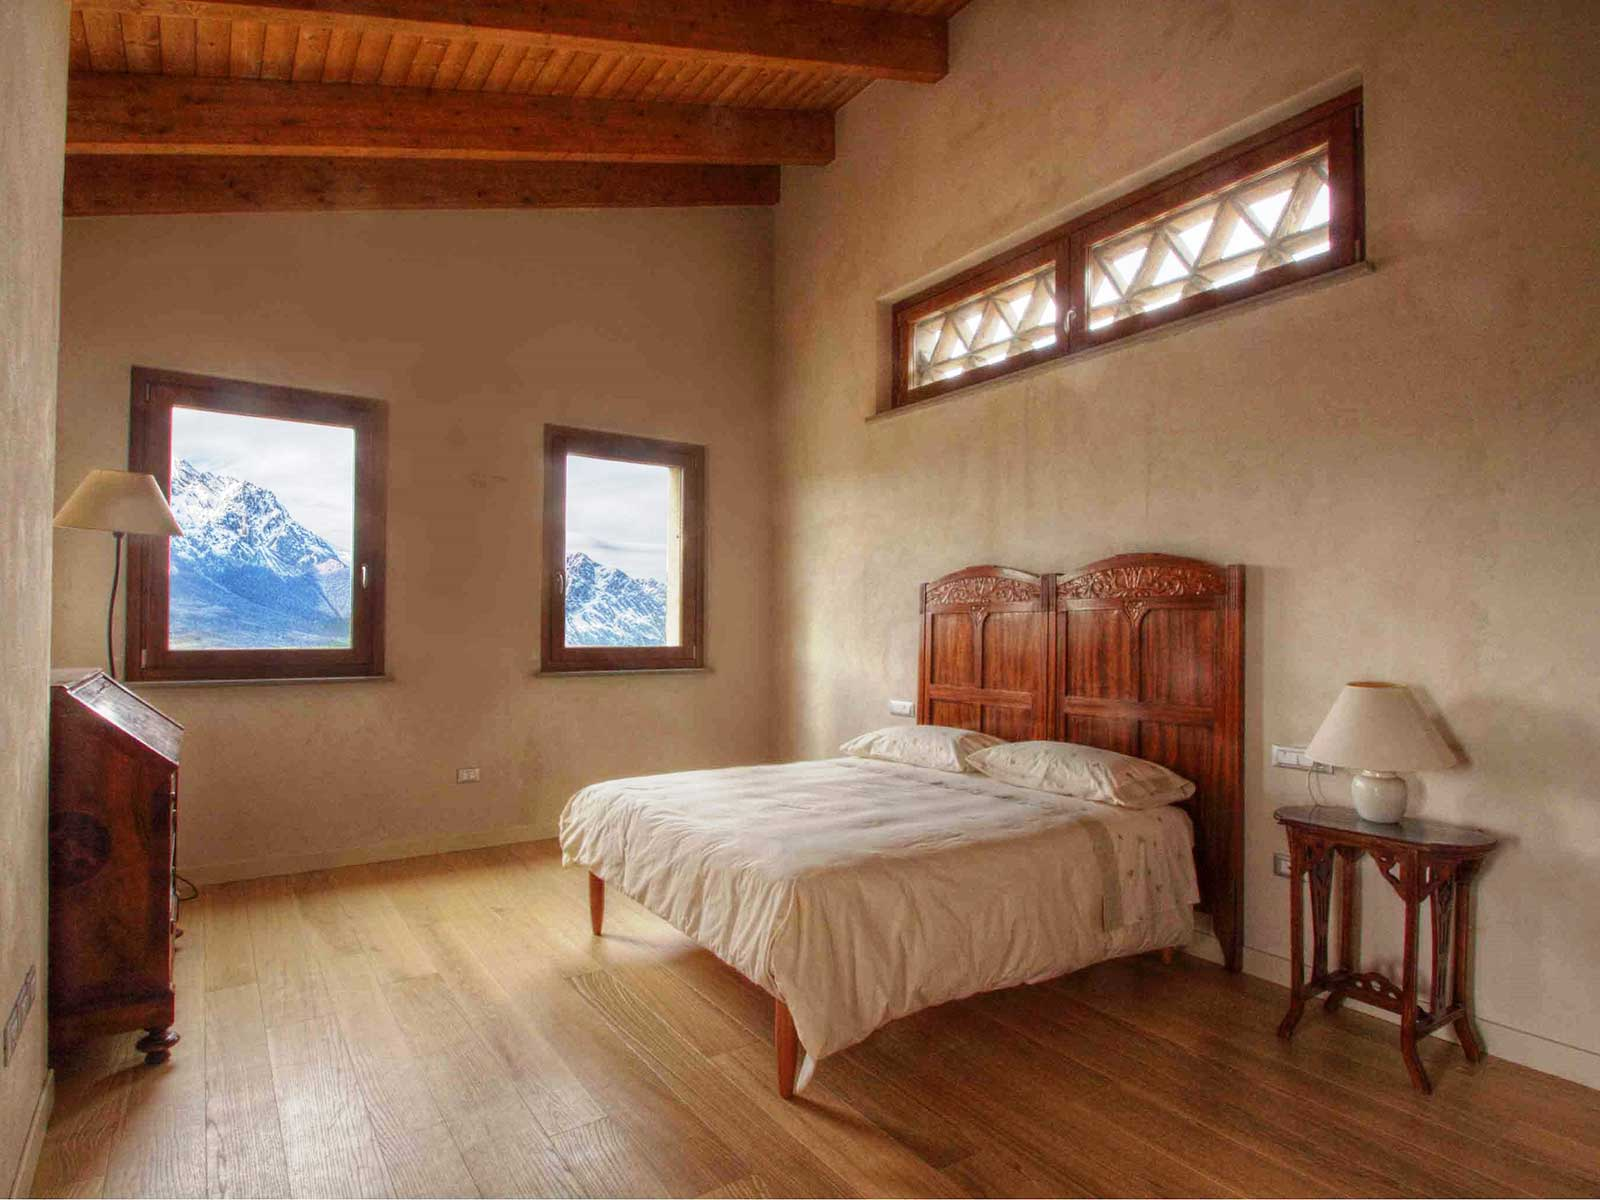 Country Houses Country Houses for sale Penne (PE), Casa Cignale - Penne - EUR 0 100